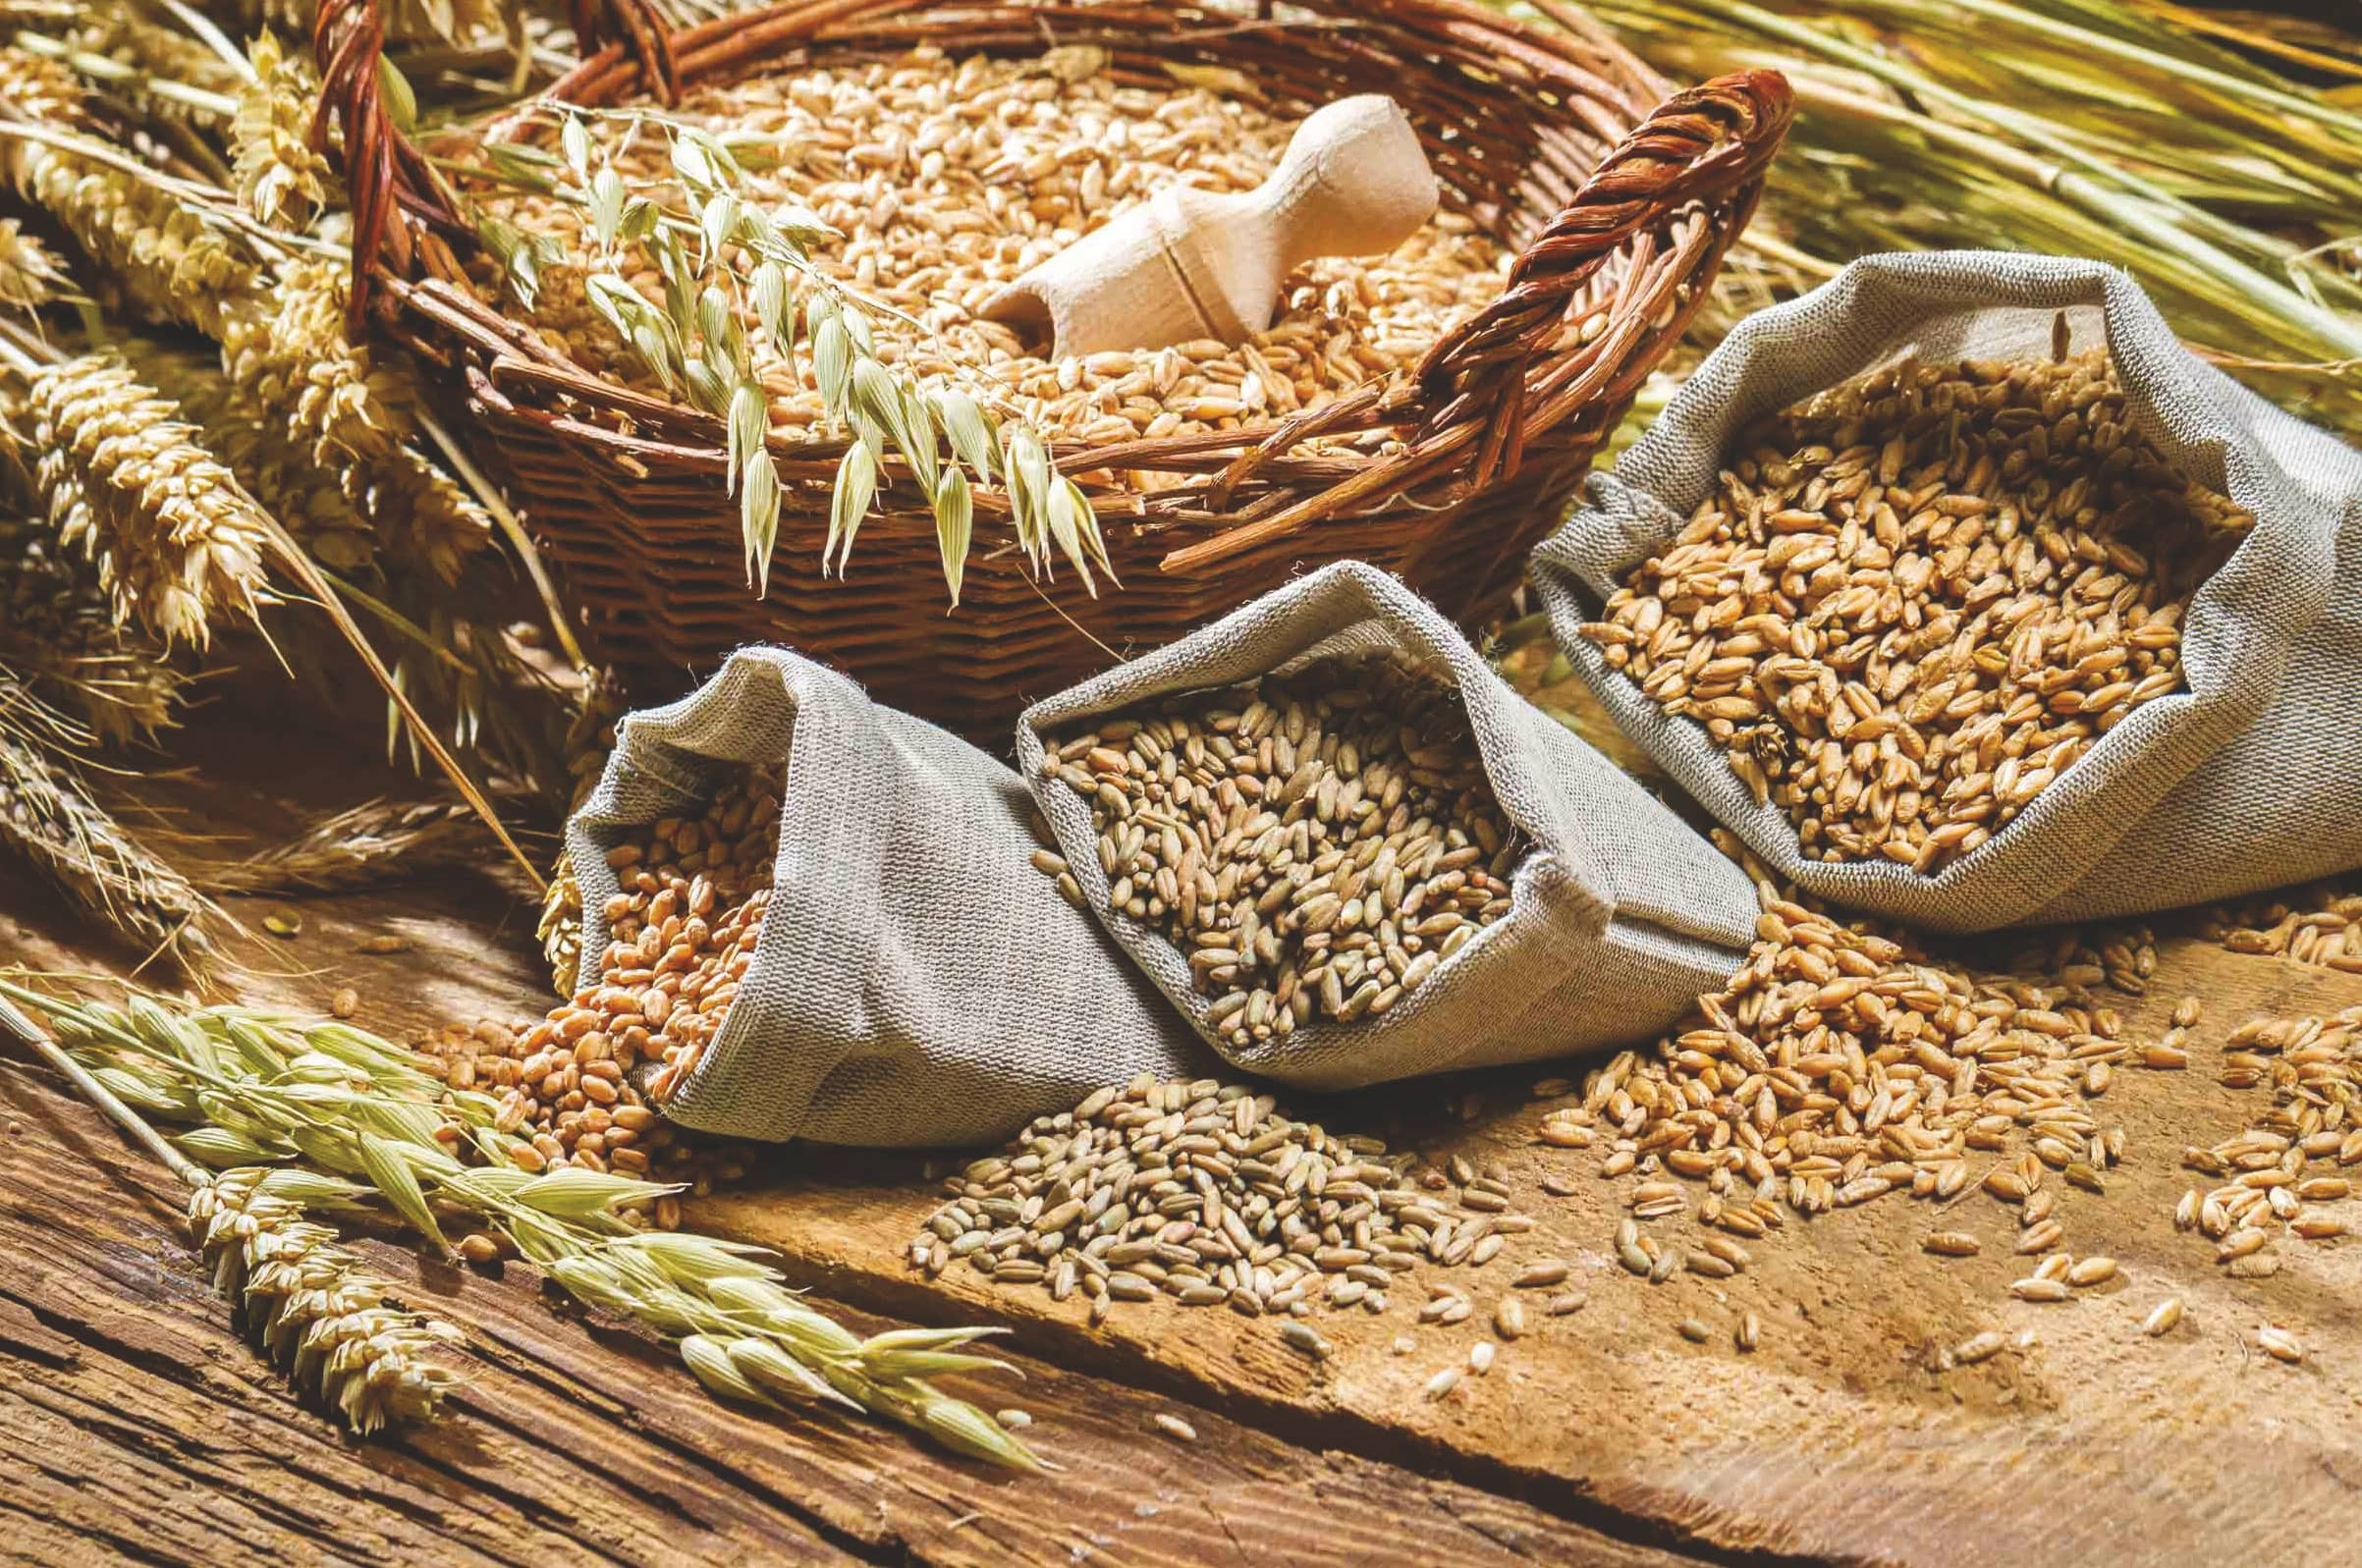 Grain Processing – Seed To Food